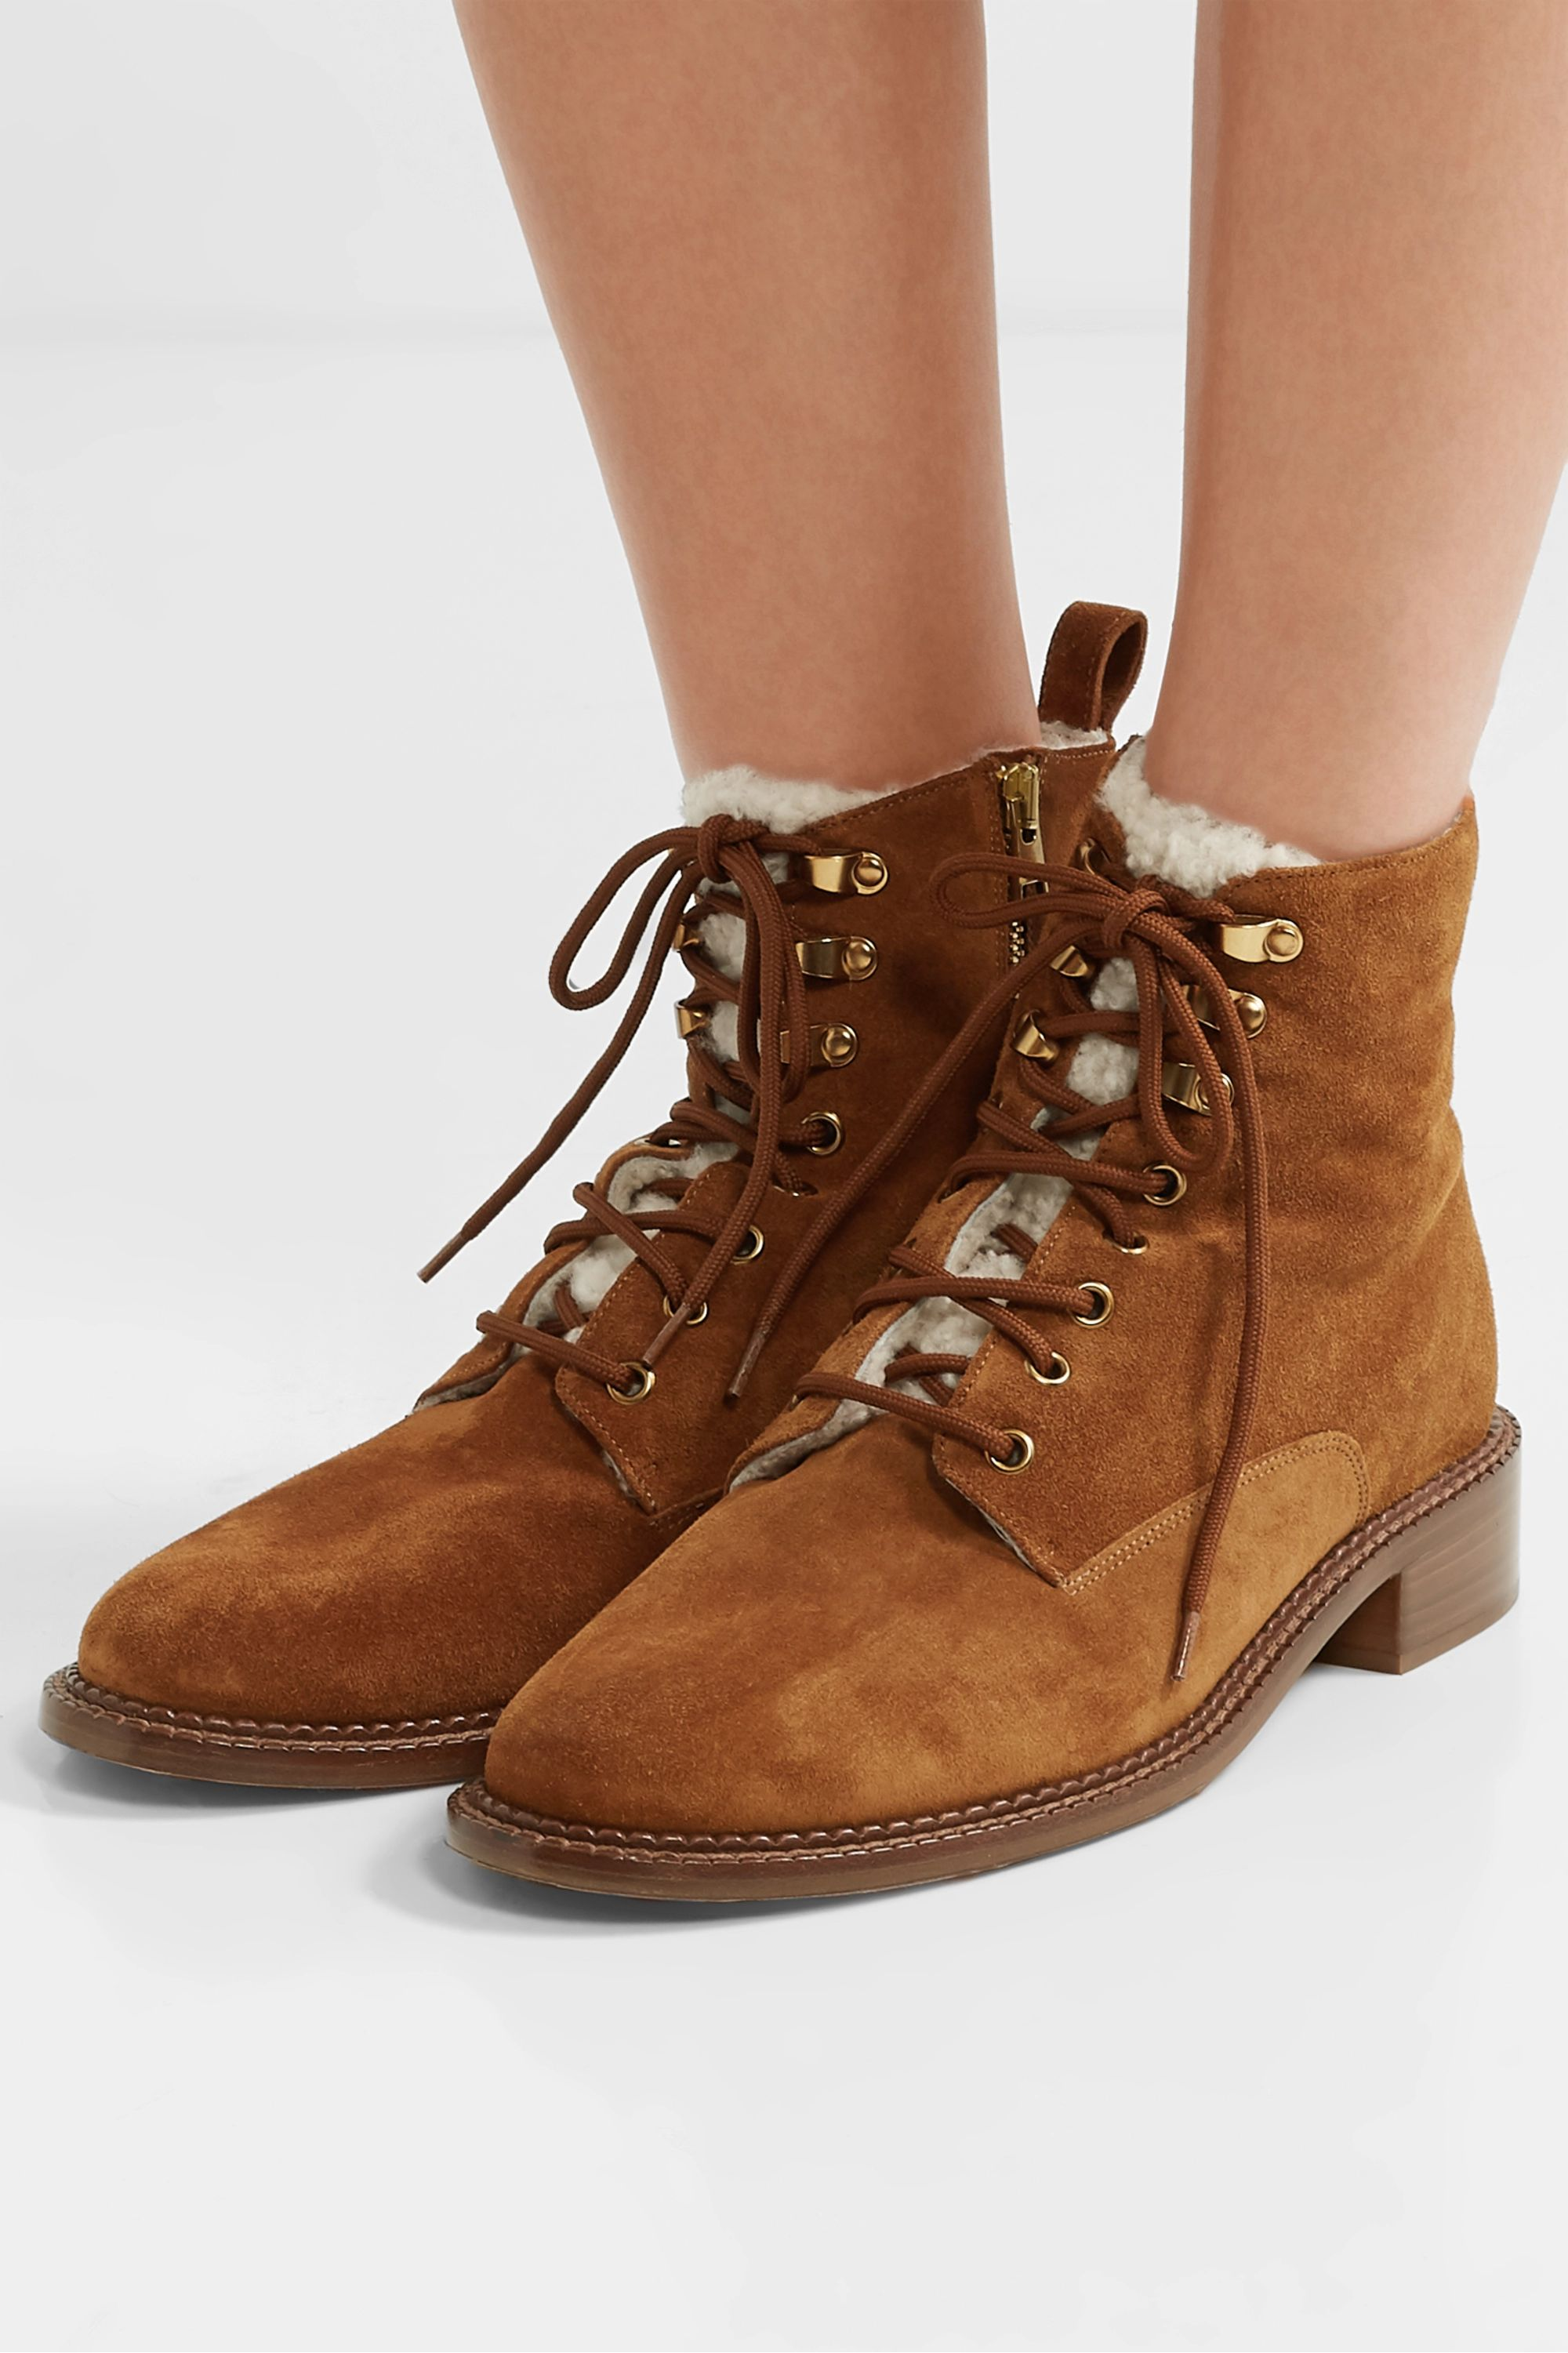 Tan Cabria-3 shearling-trimmed suede